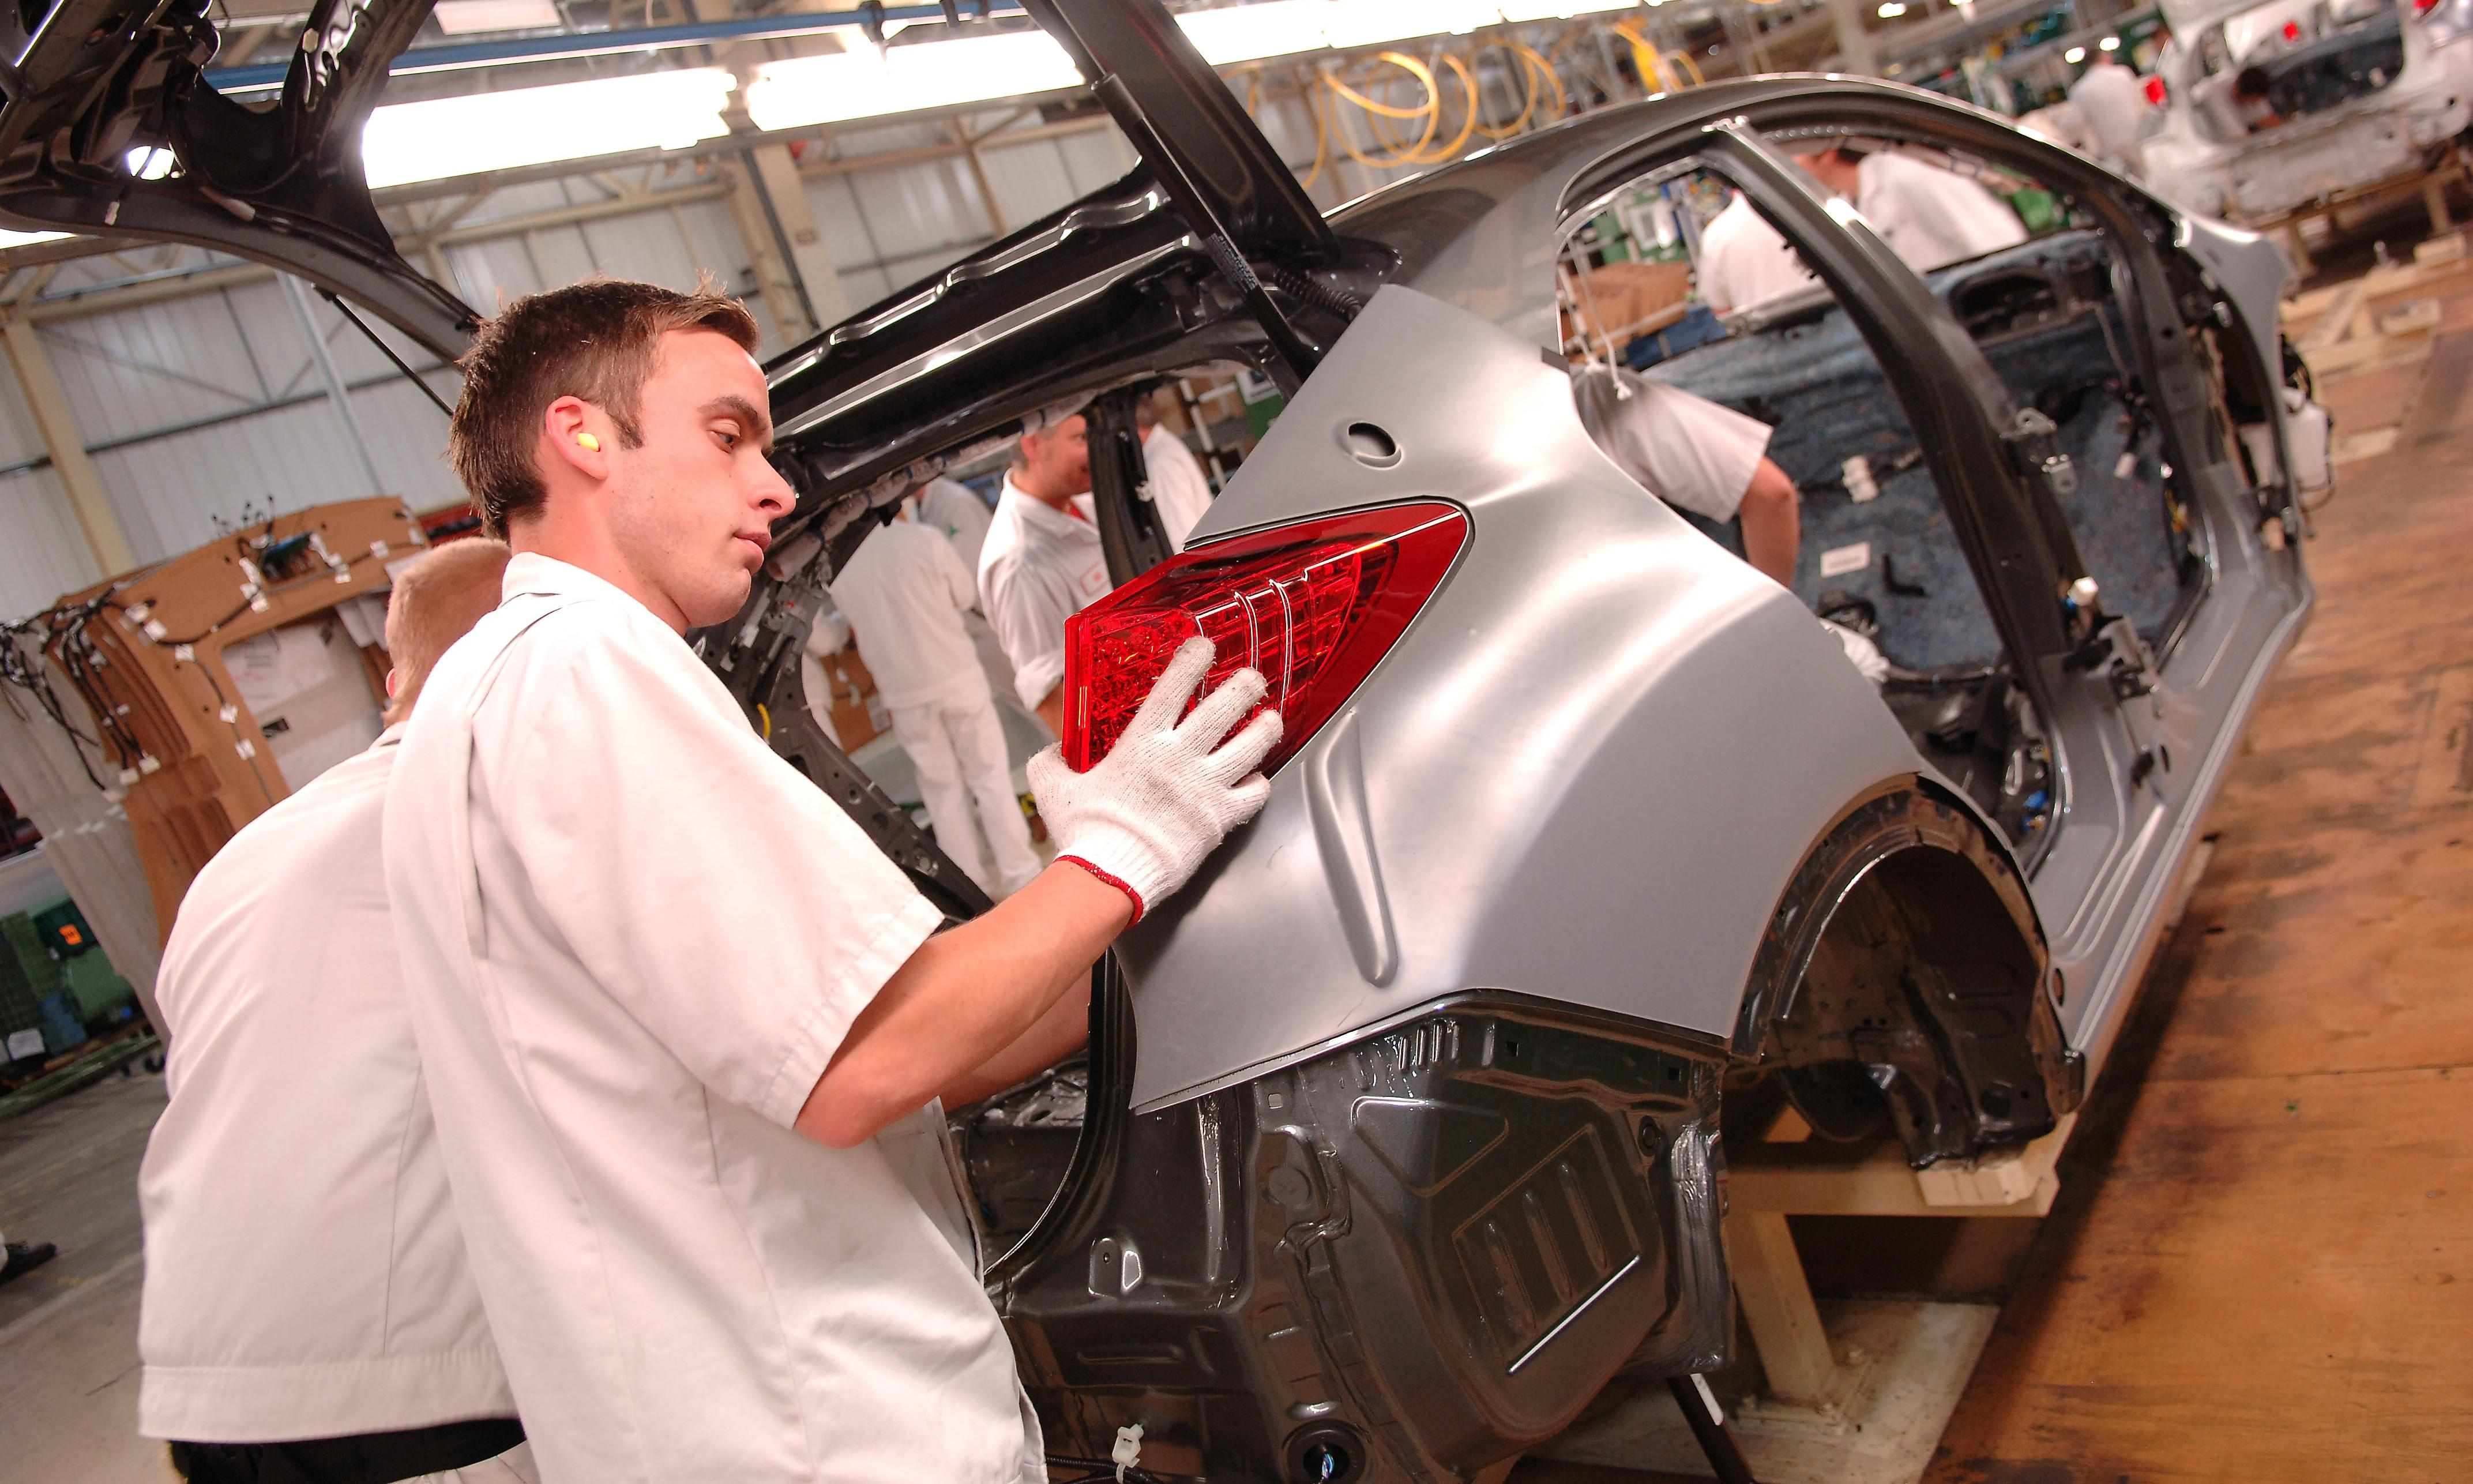 'Shattering body blow' as Honda plans to close Swindon factory